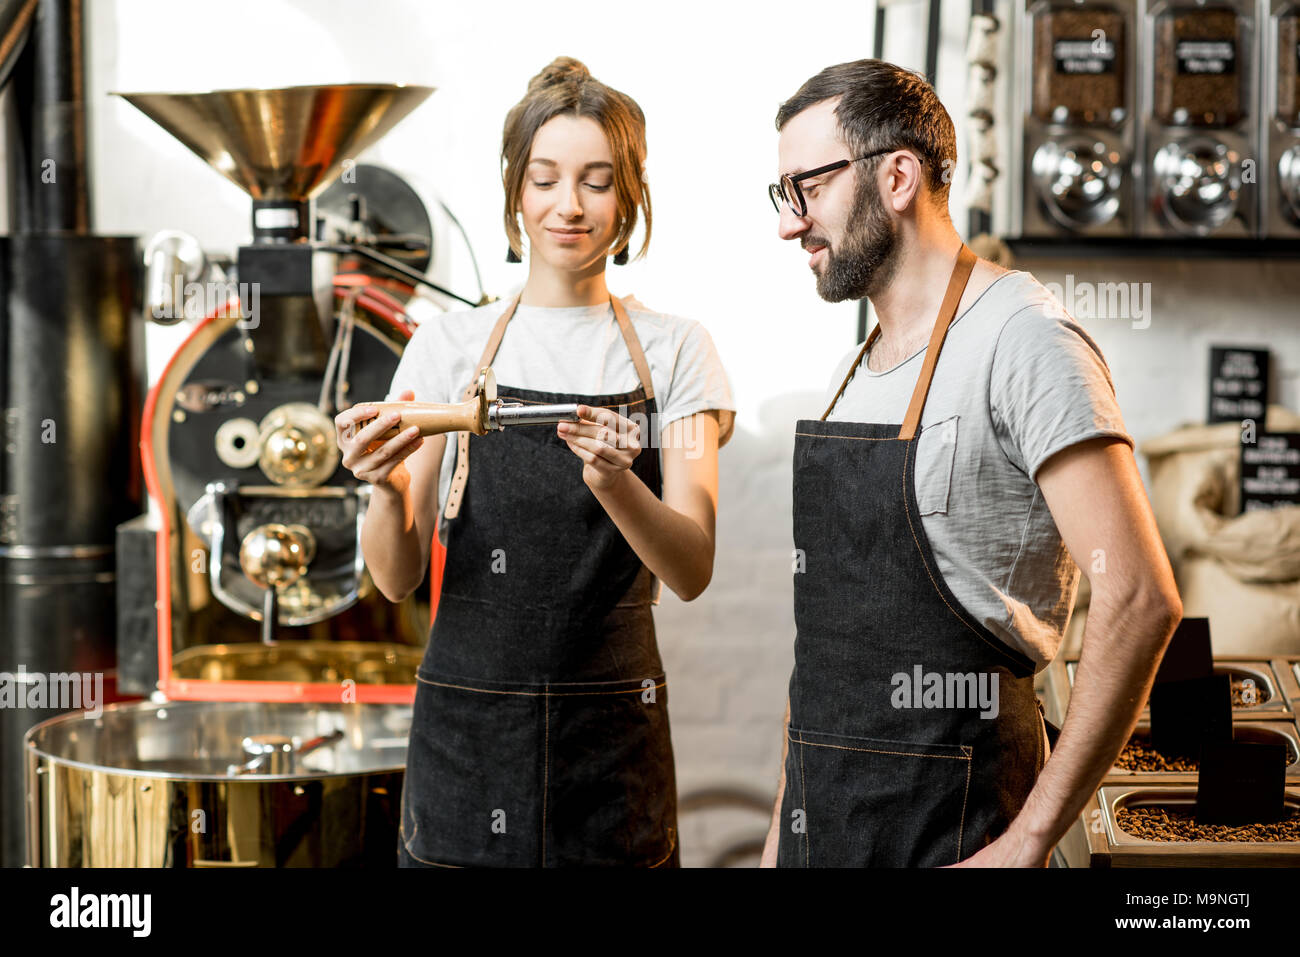 Baristas checking the quality of coffee - Stock Image